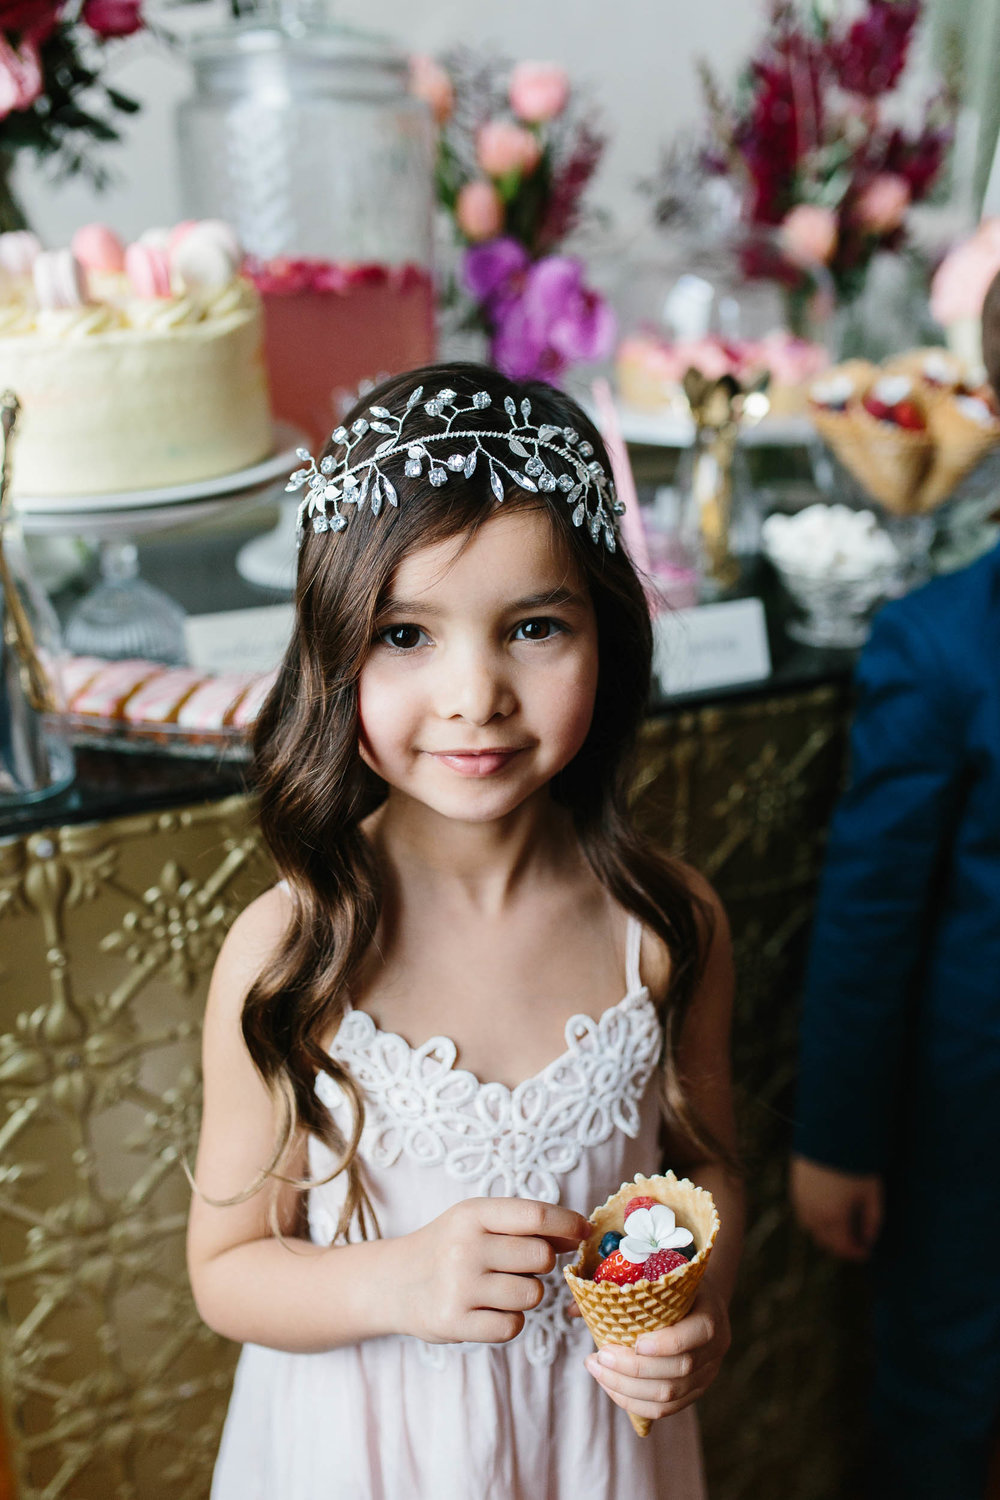 Kas-Richards-Party-with-Lenzo-Witchery-Kids-George-Ballroom-Event-153.jpg